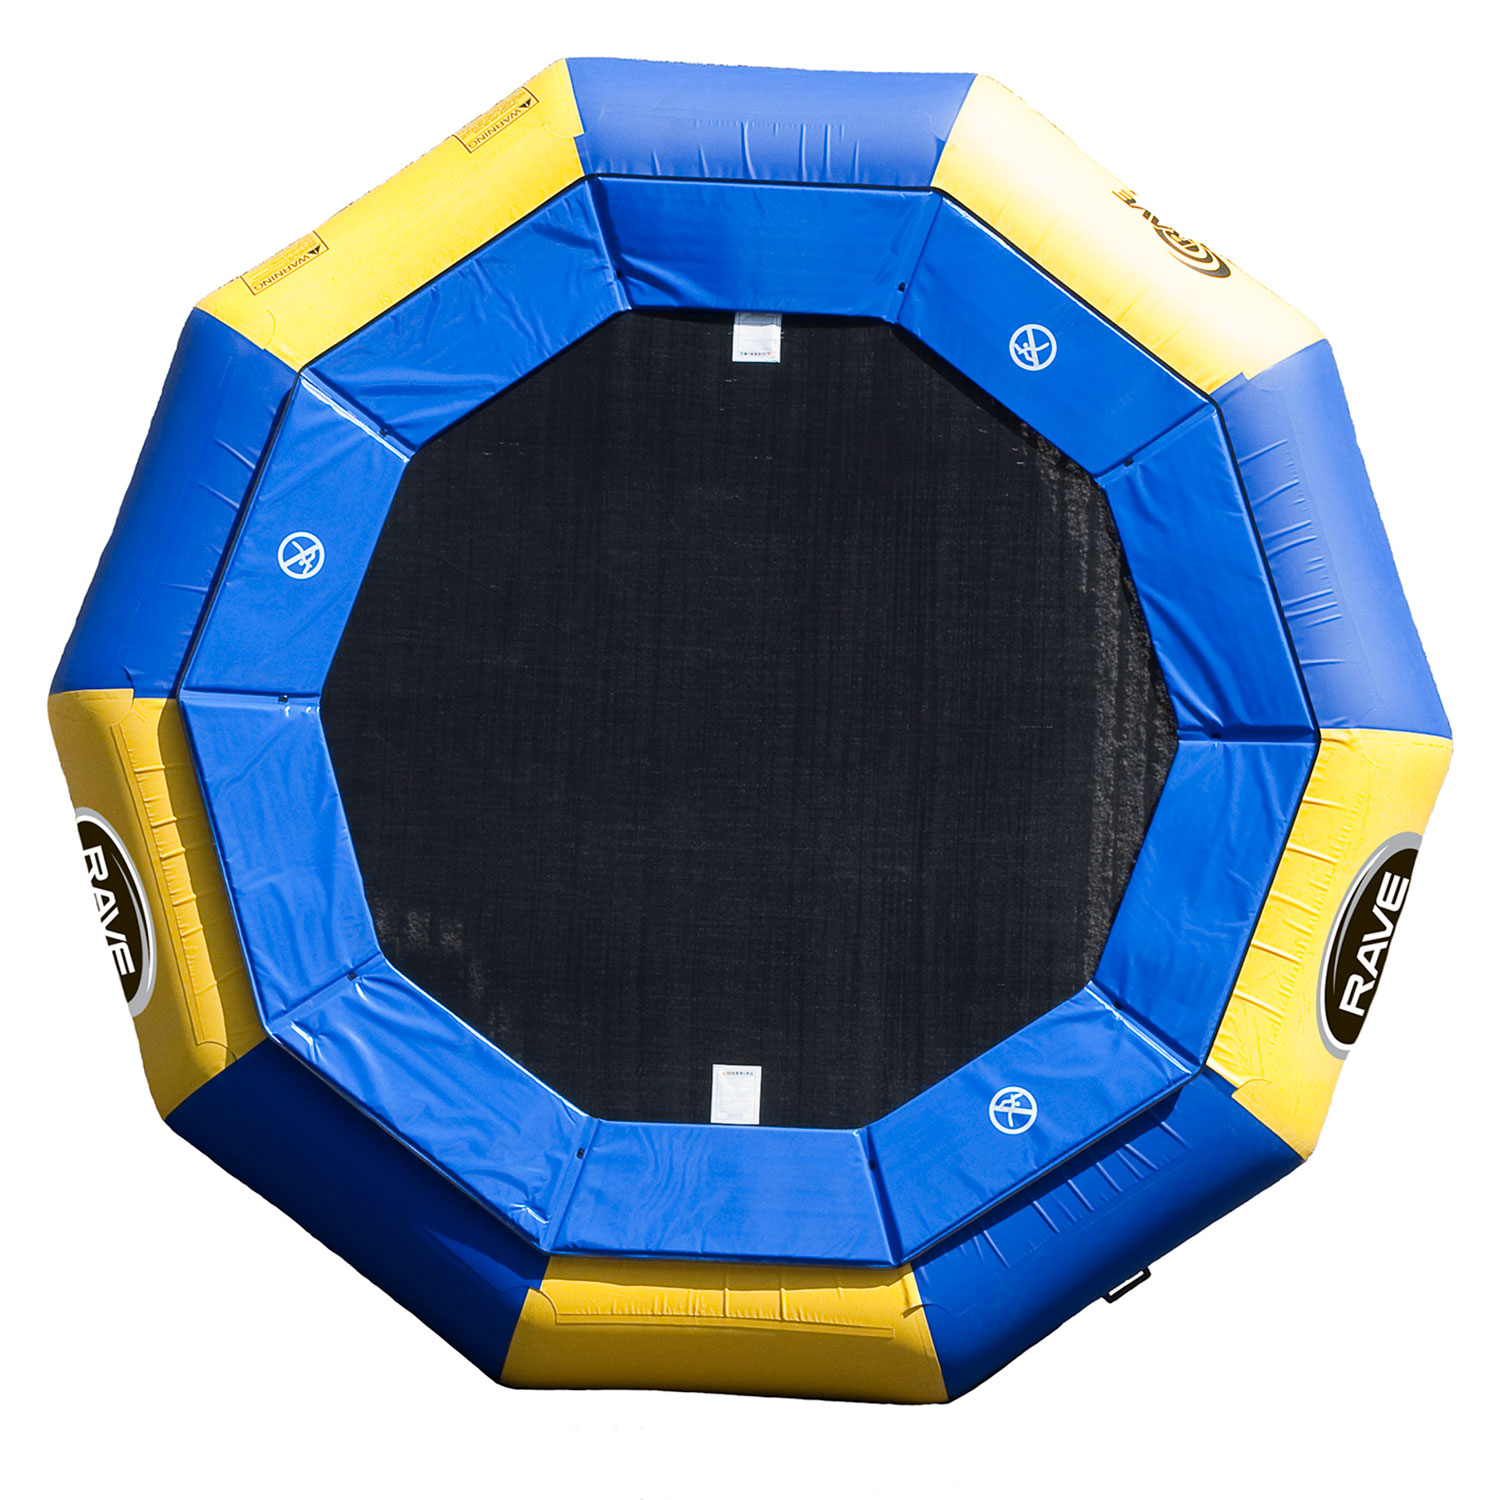 Rave Sport Aqua Jump 120 Water Bouncer Trampoline With